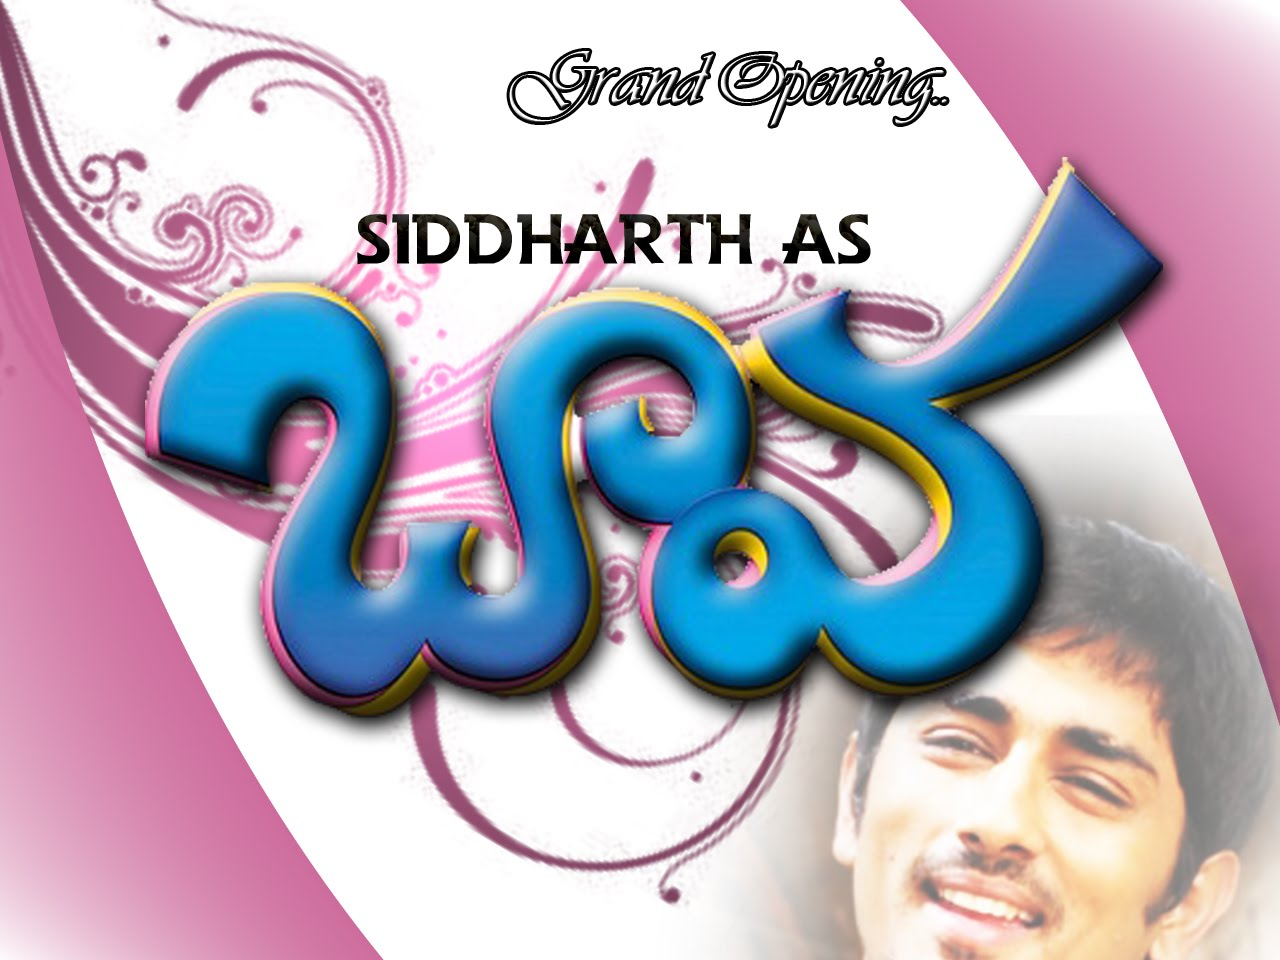 ̲̅♥̲̅]Siddharth's New Bava Wallpapers[̲̅♥̲̅]